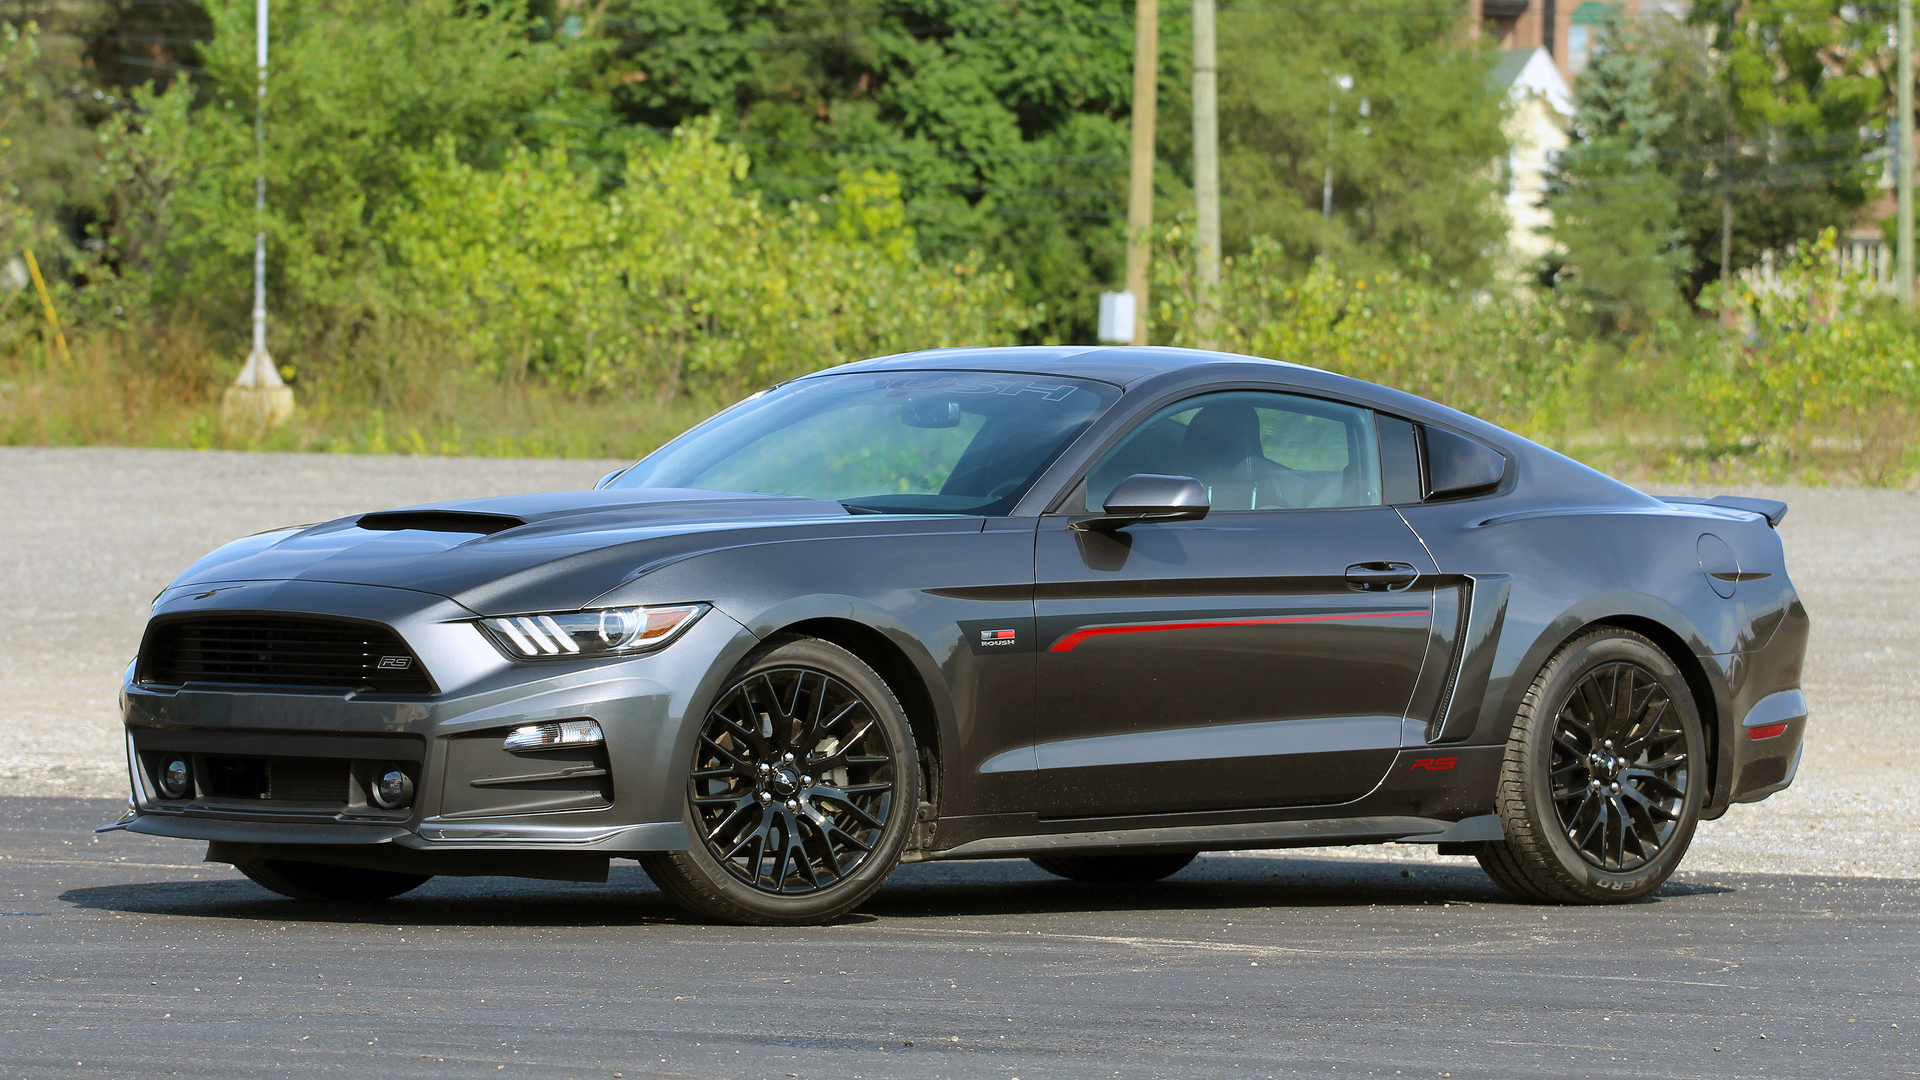 2017 Roush Rs Mustang Review Motor1com Photos 3 8 Liter Ford Engine Diagram